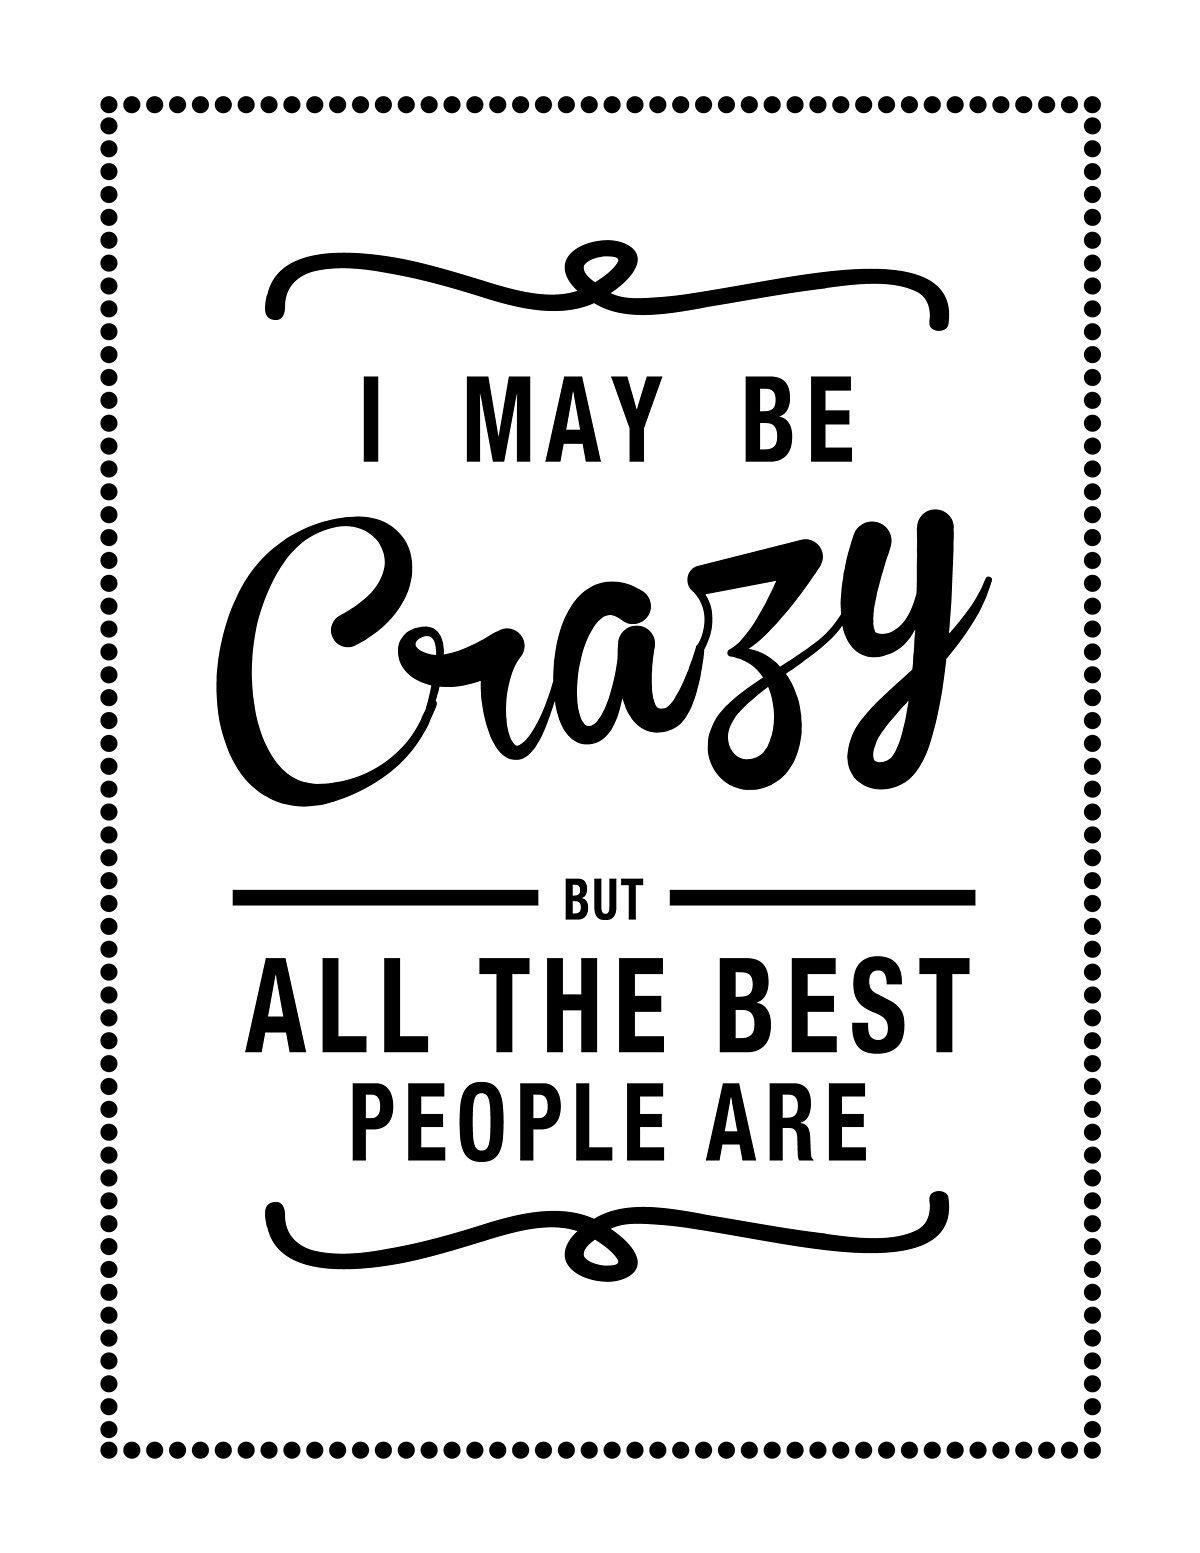 Alice In Wonderland I May Be Crazy But All The Best People Are Including My Friends Quotes Quotable Quotes Me Quotes